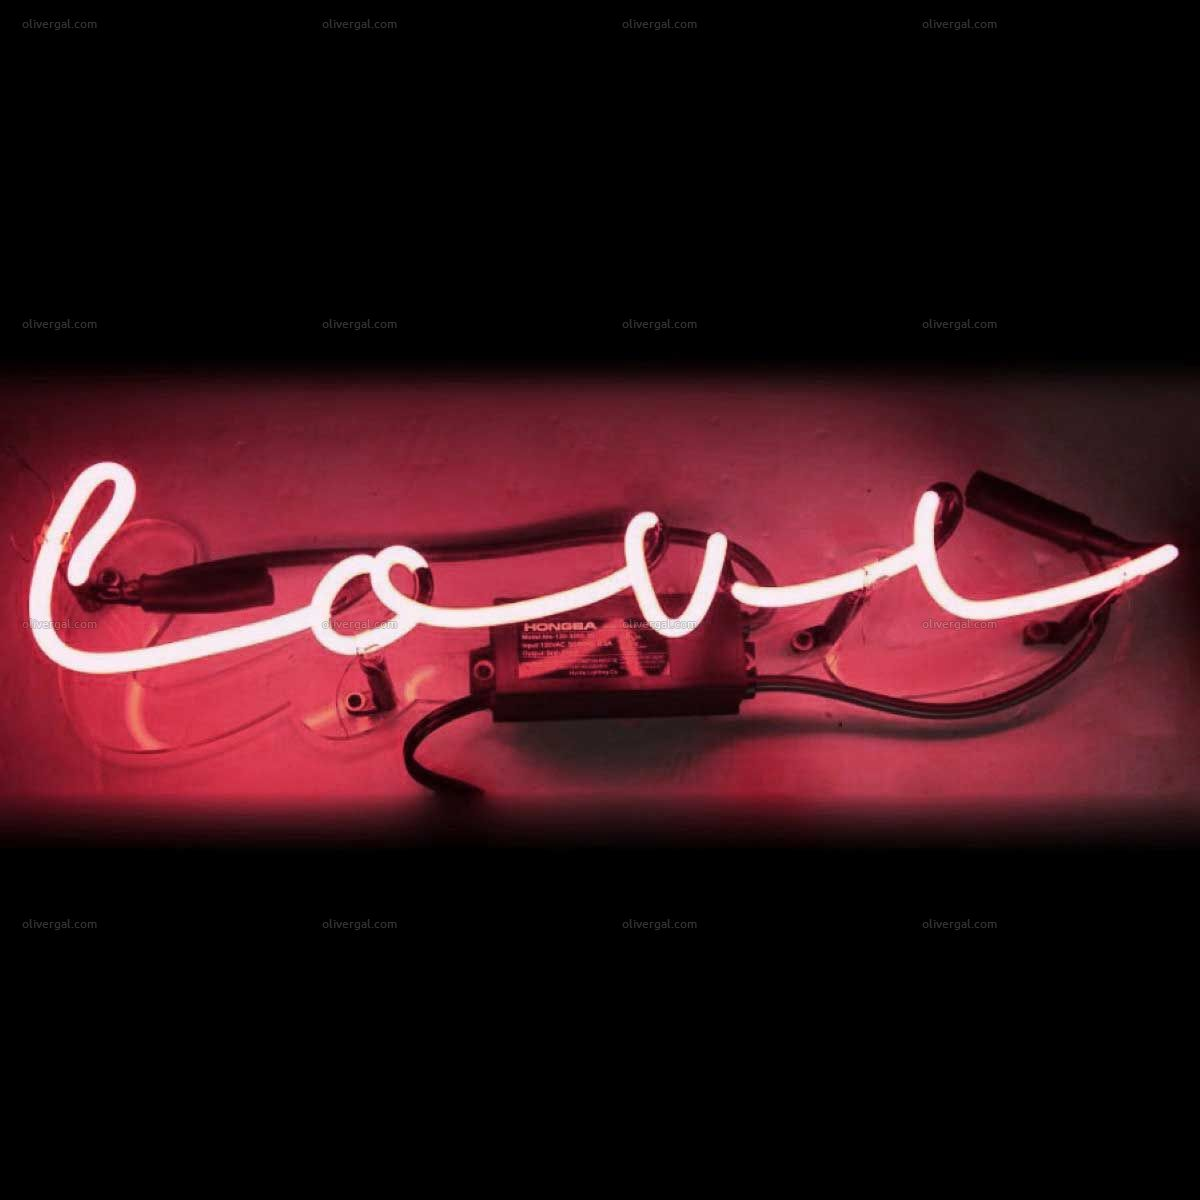 Love Neon Sign from Oliver Gal